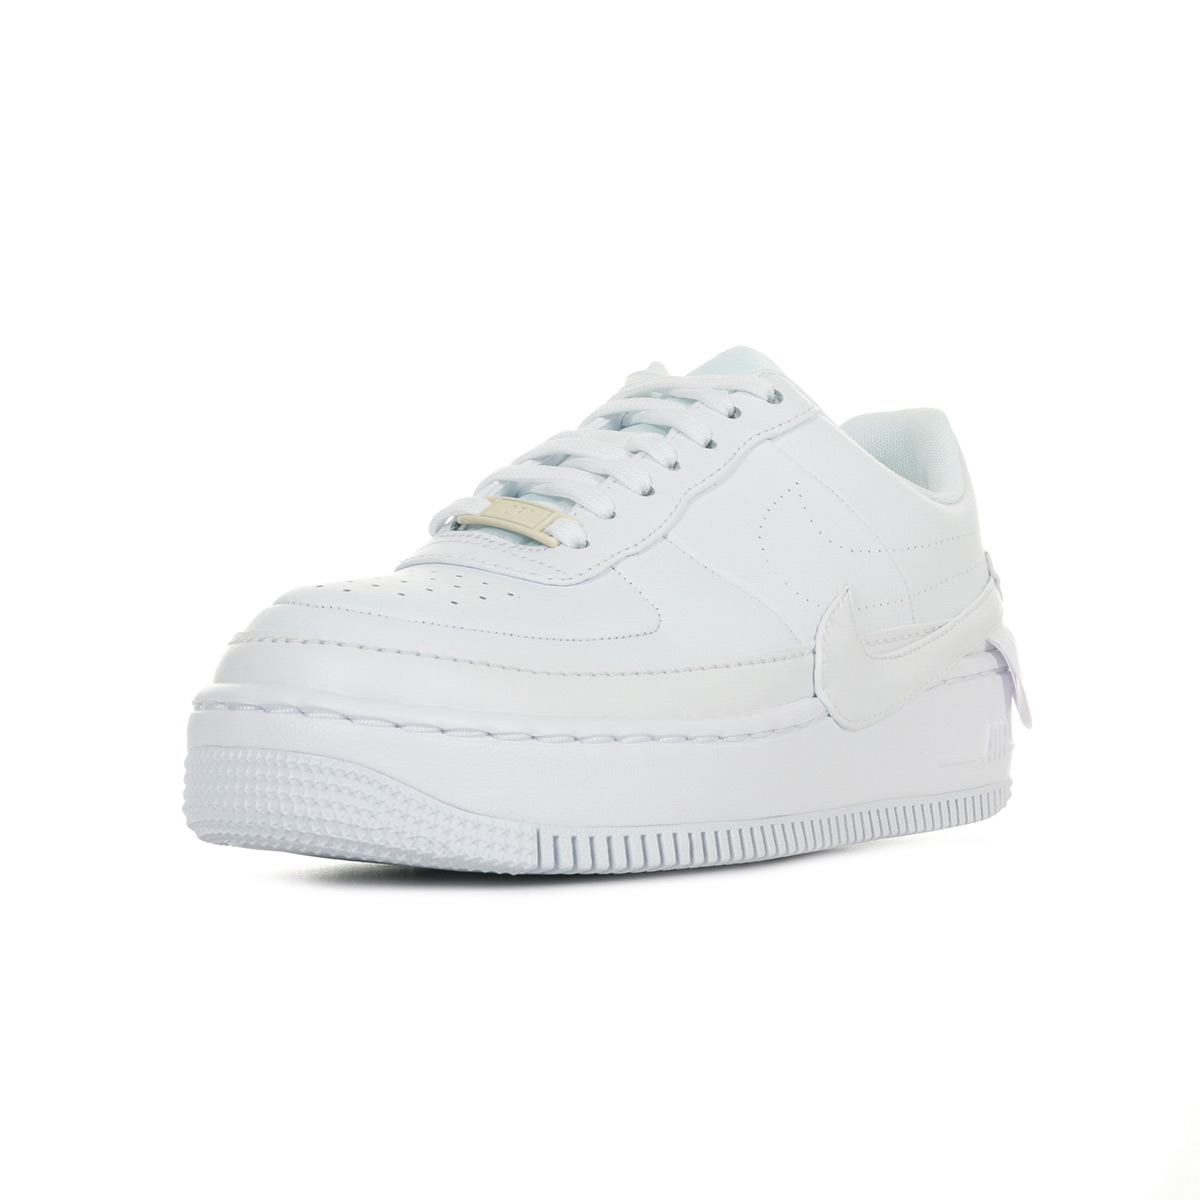 CHAUSSURES BASKETS NIKE femme Wn's Air Force 1 Jester XX taille Blanc Blanche